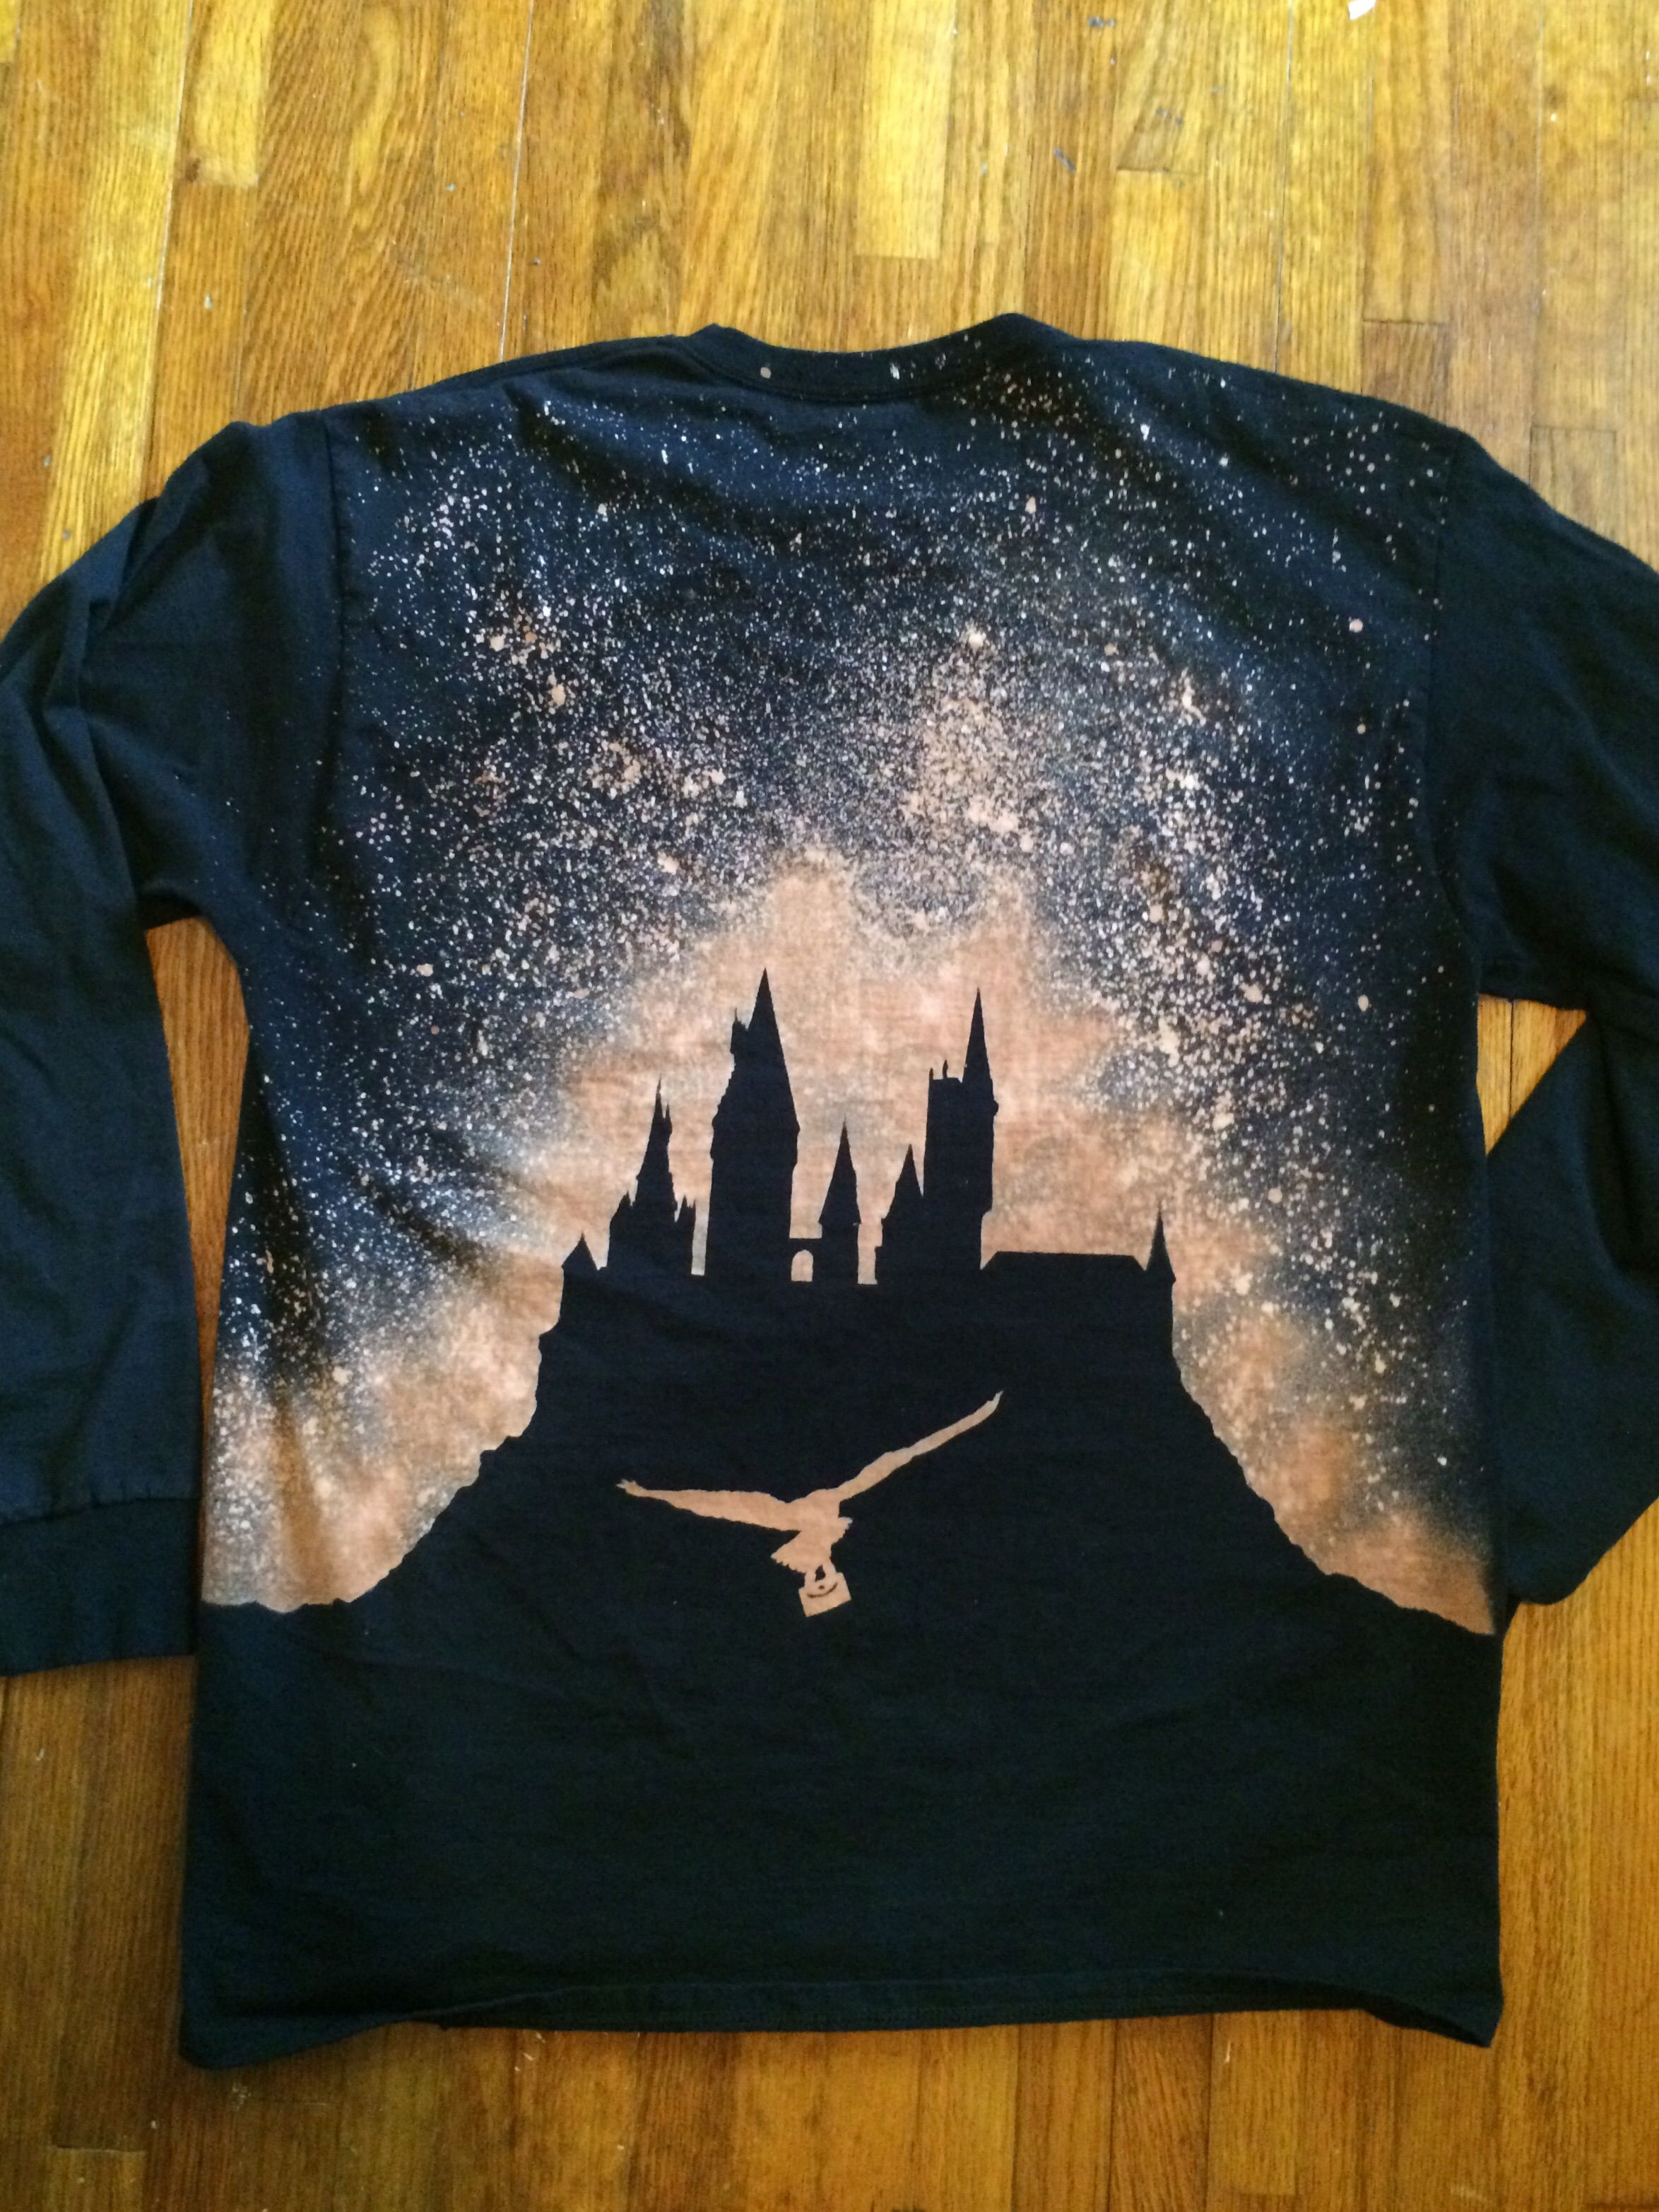 Harry Potter Bleach Shirts Cricut Projects Pinterest Harry